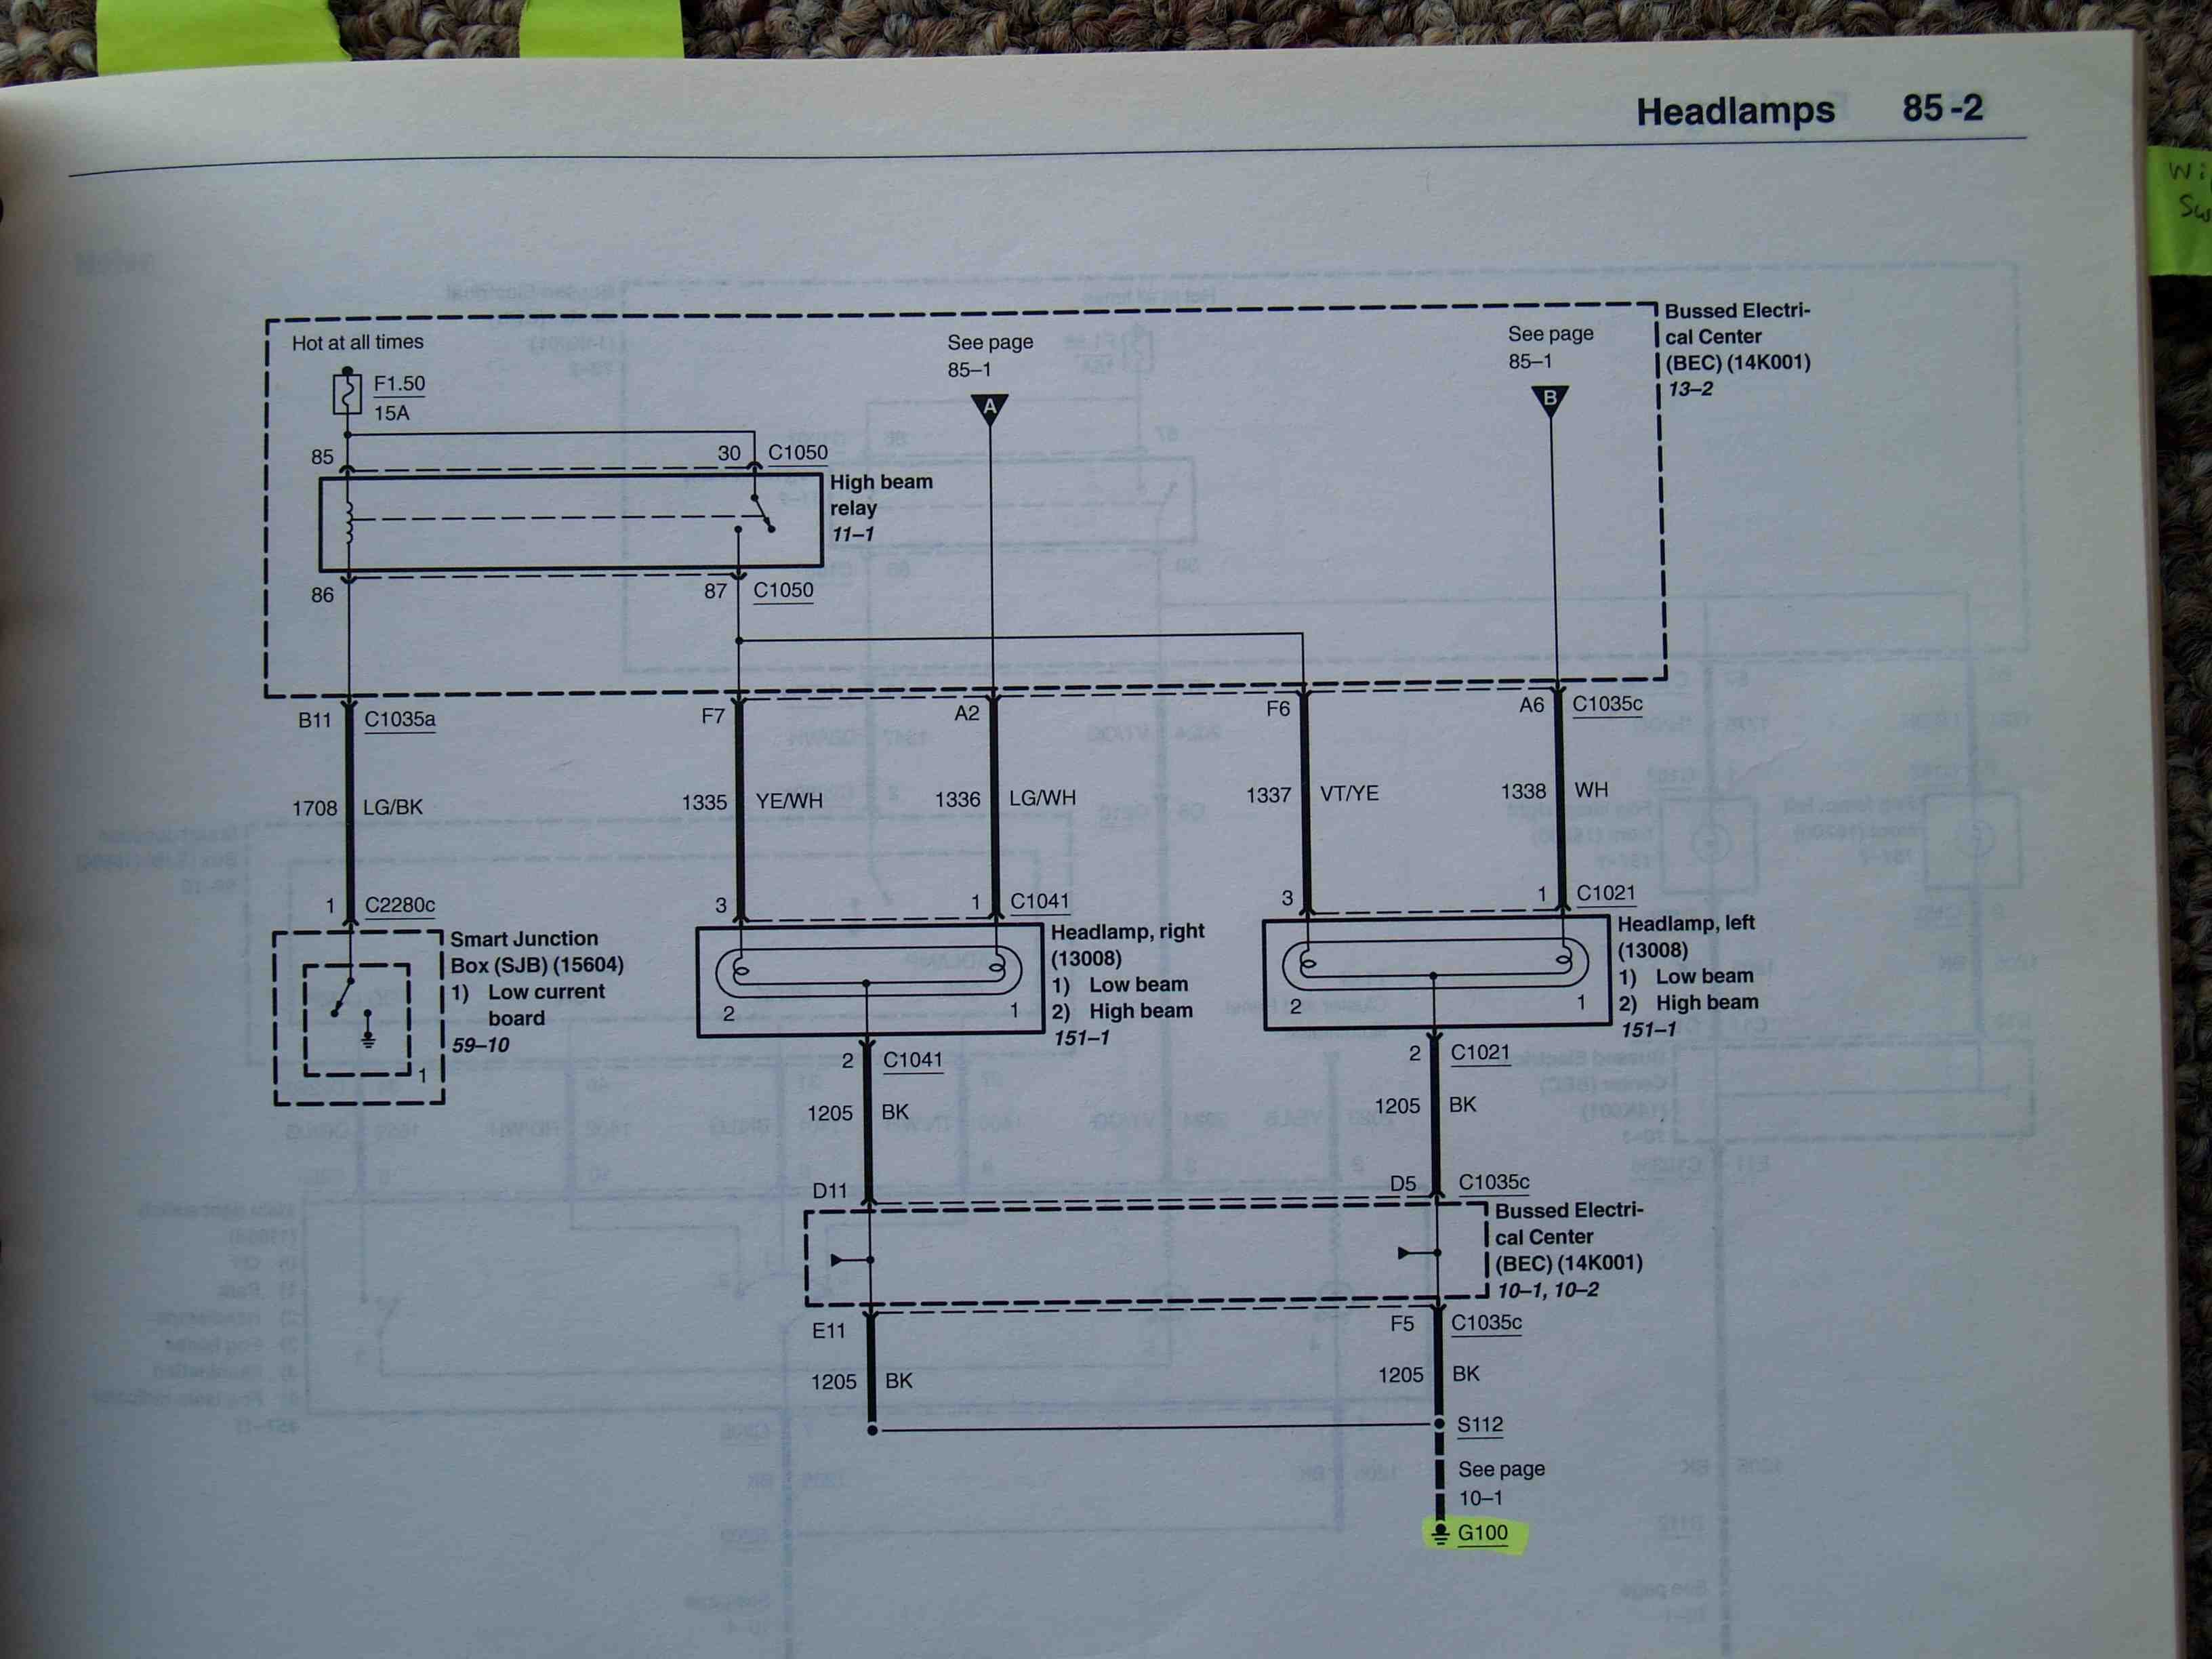 99331d1274386710 2008 gt headlight wiring diagram p5206404 2 2008 gt headlight wiring diagram? ford mustang forum 2008 ford mustang wiring diagrams at honlapkeszites.co